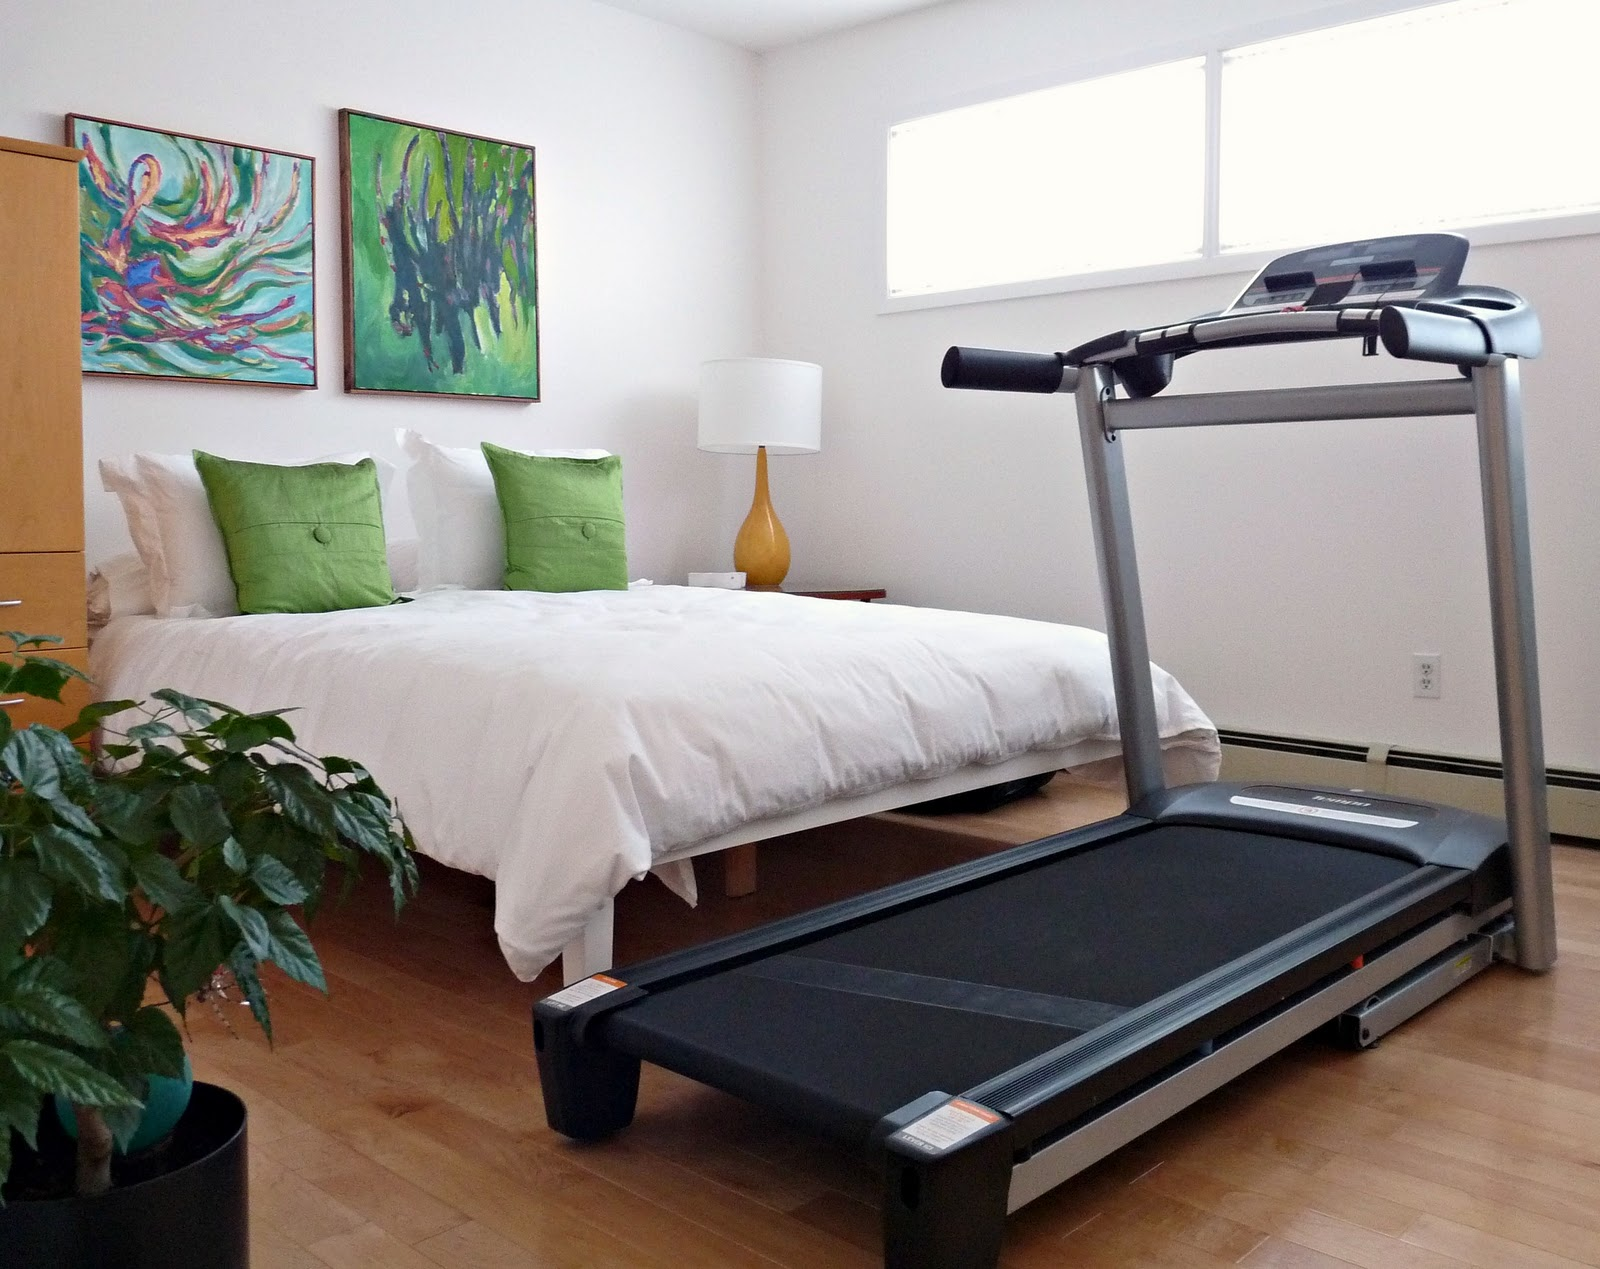 ... Exercise Equipment Belongs Elsewhere. Get Rid Of Everything That  Doesnu0027t Belong In A Bedroom And Make Look For Making Feng Shui Improvements.